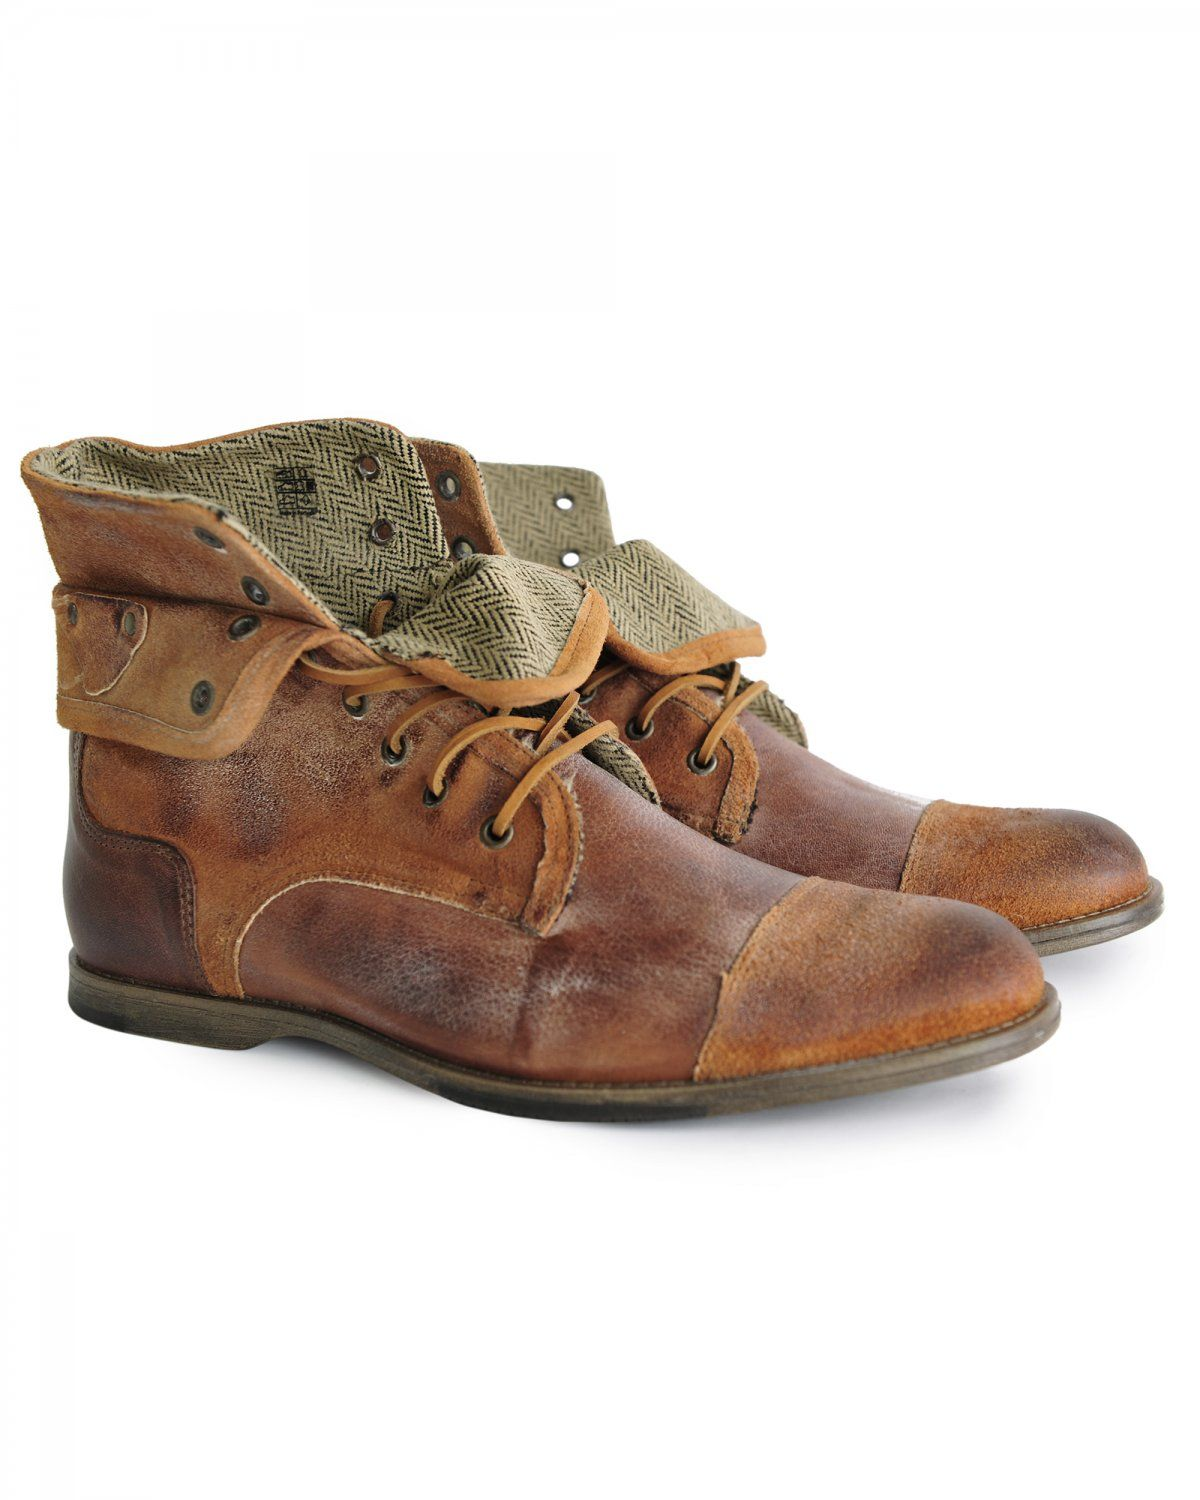 5d5e9ec4a THE KICKER BOOT by Industrie Online Clothing Stores, Casual Shoes, Men  Casual, Hiking